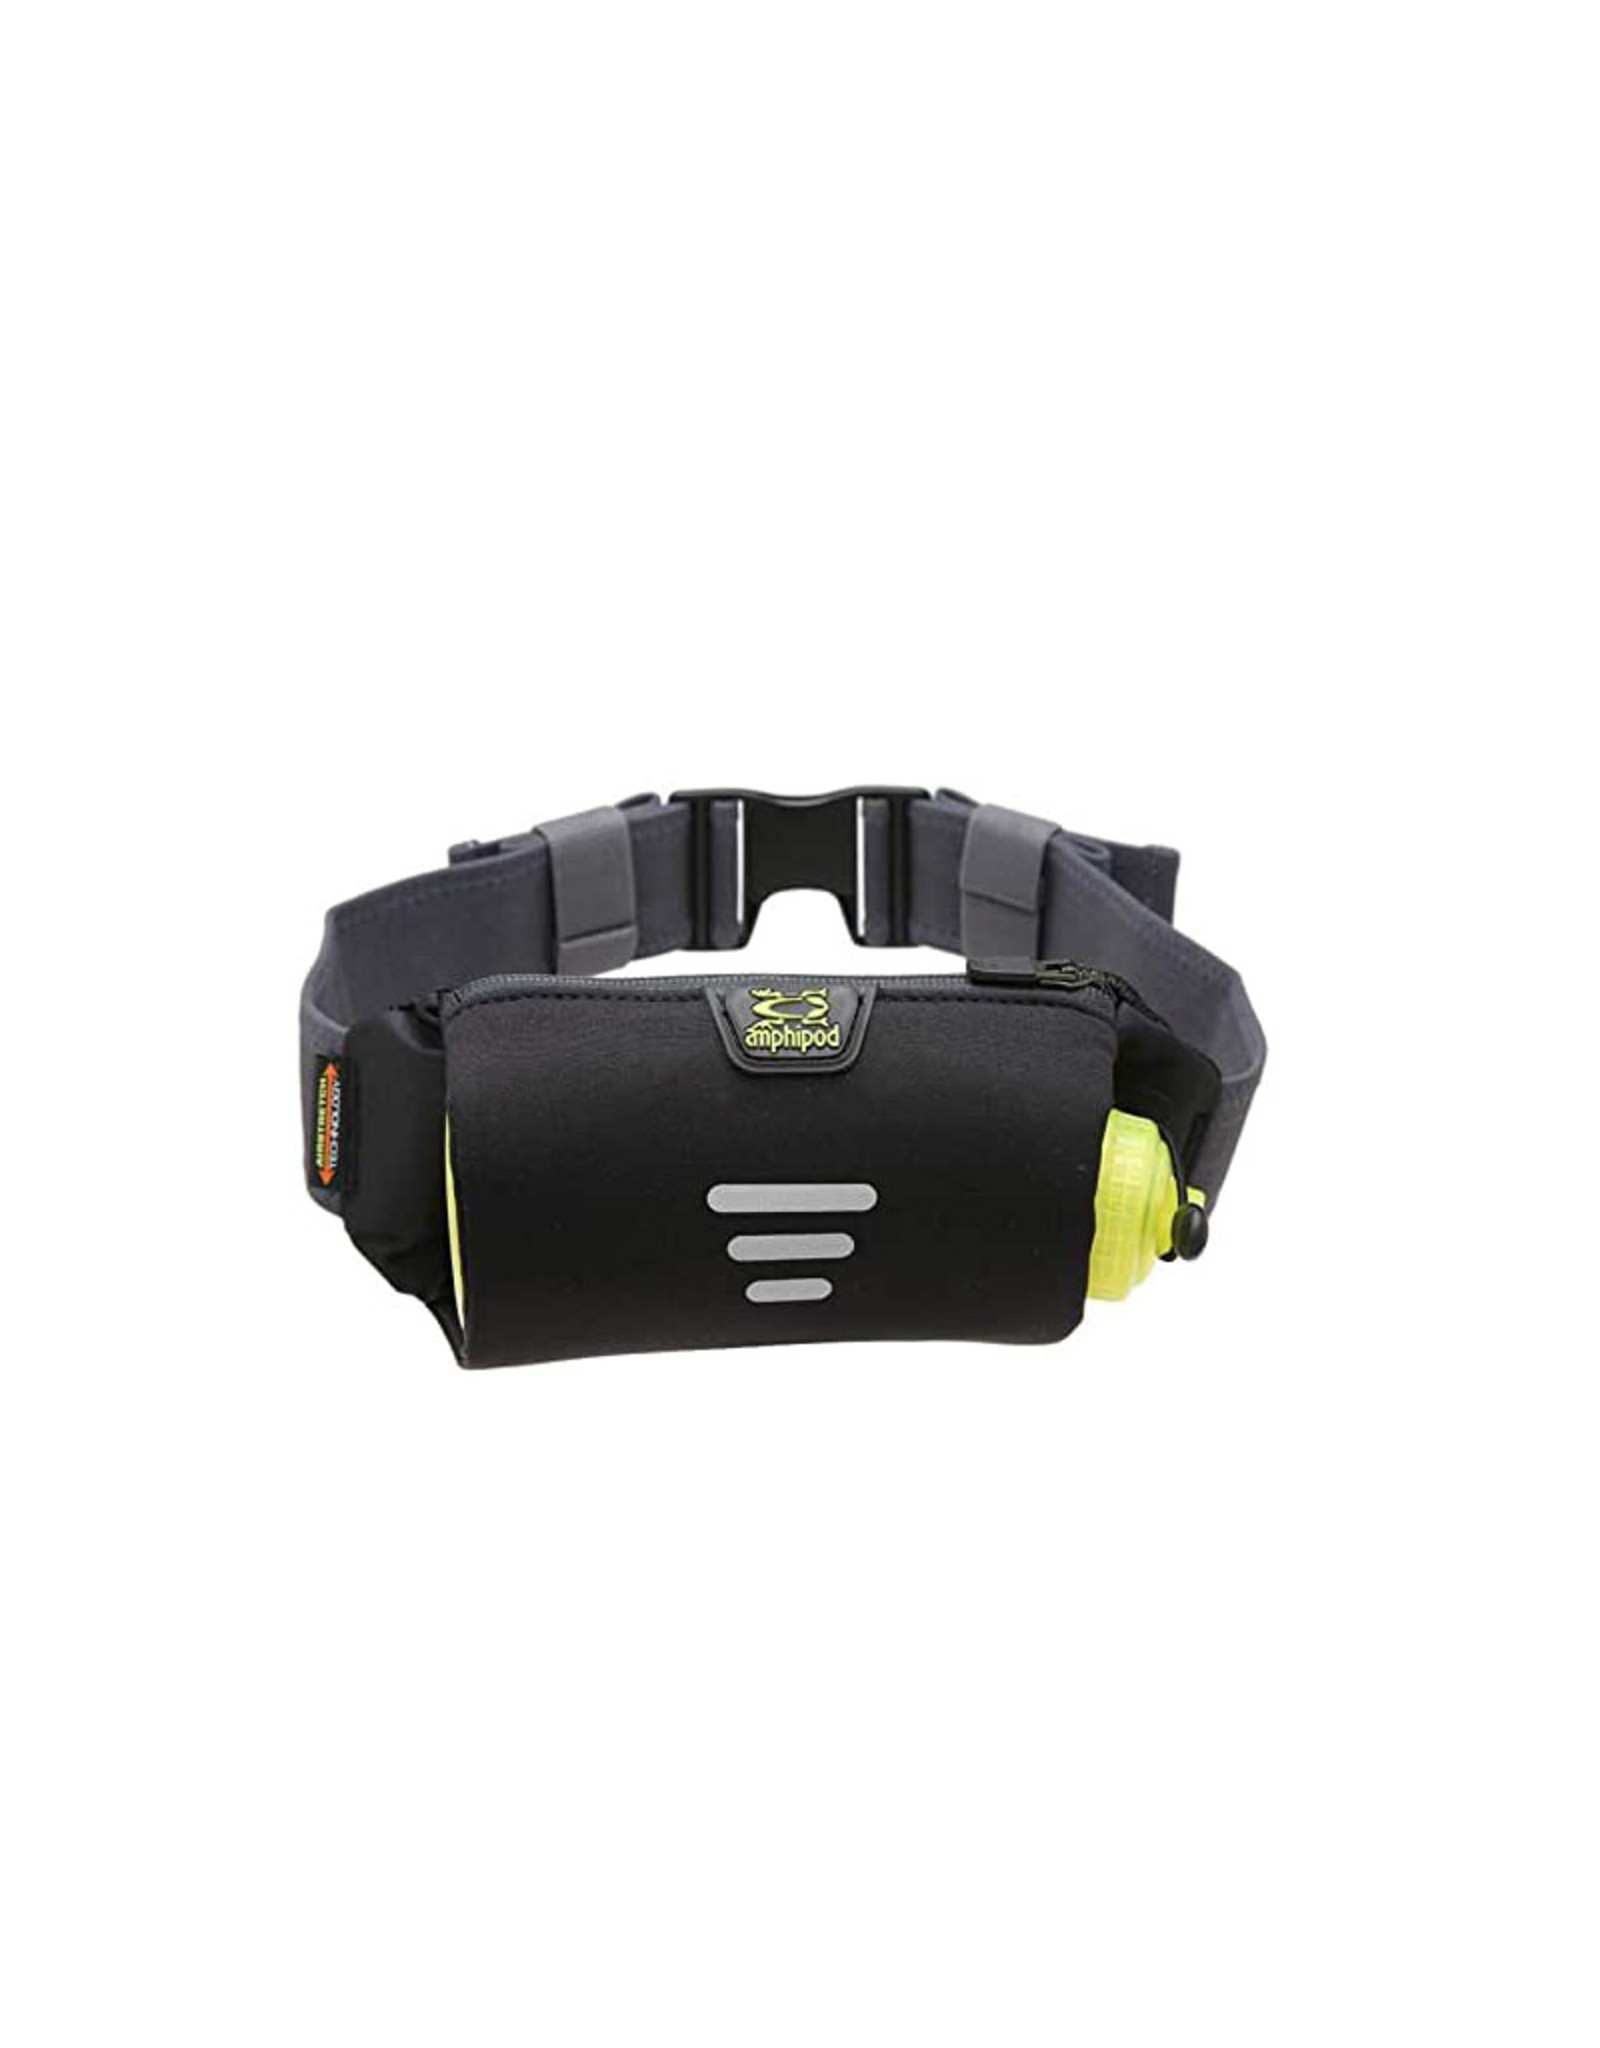 Amphipod Stealth Runner with AirStretch